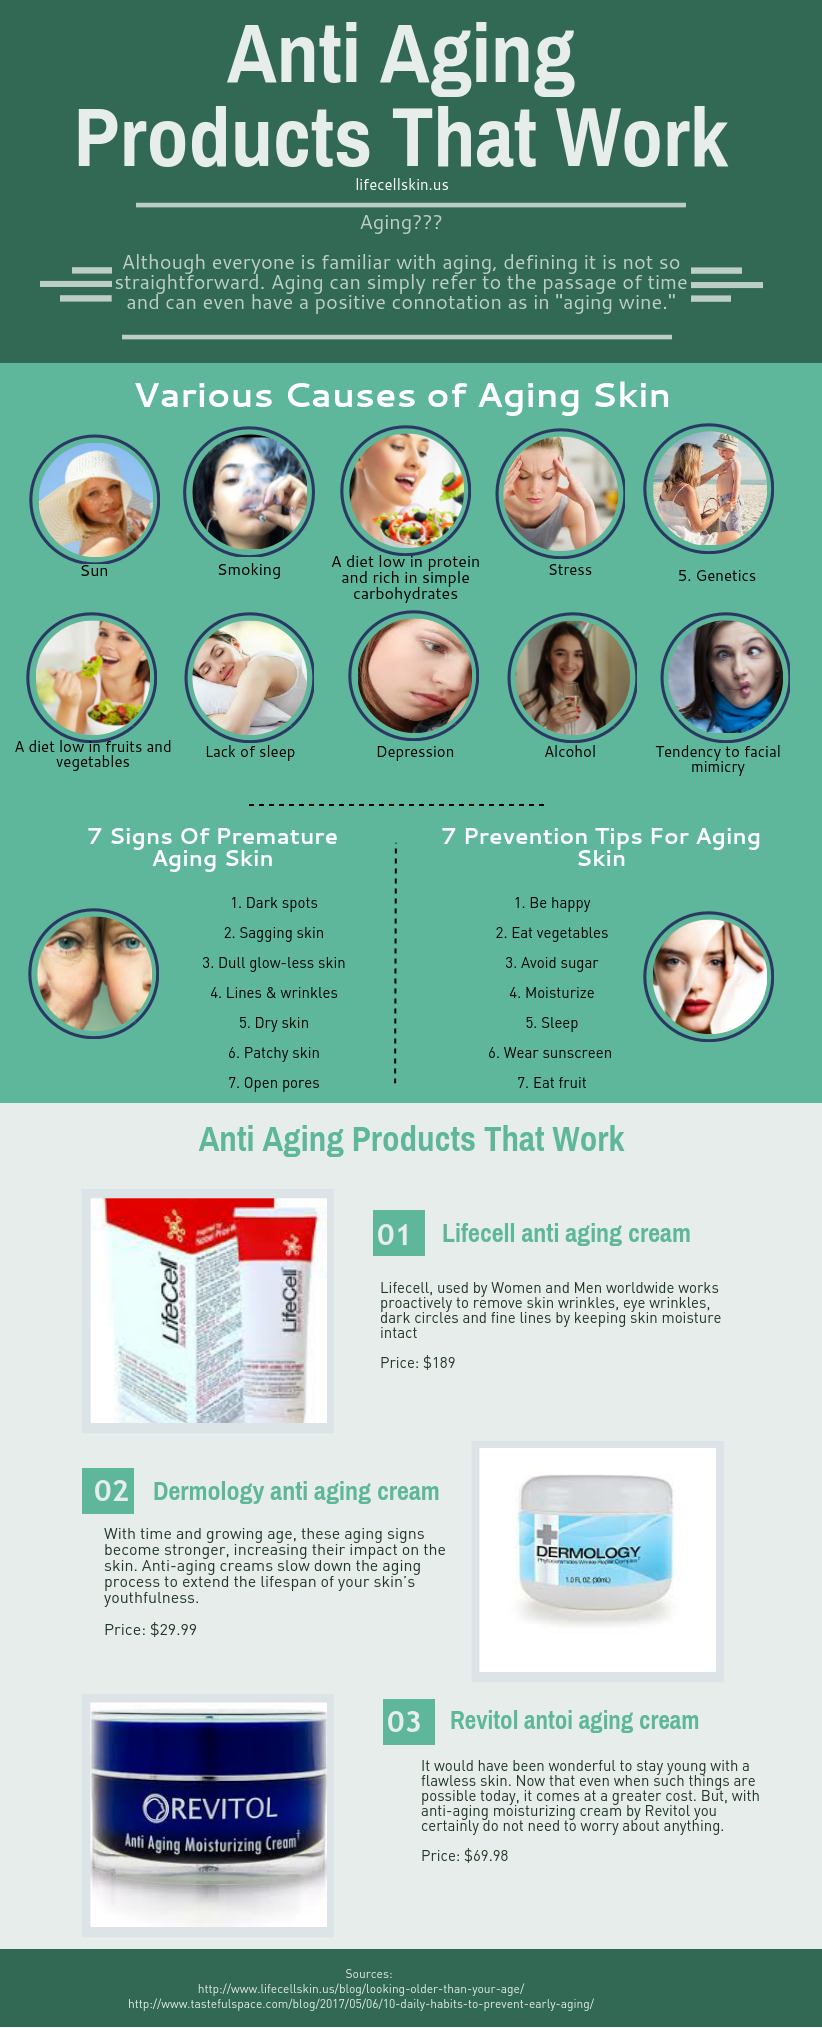 10 Anti Aging Products That Work- Infographic